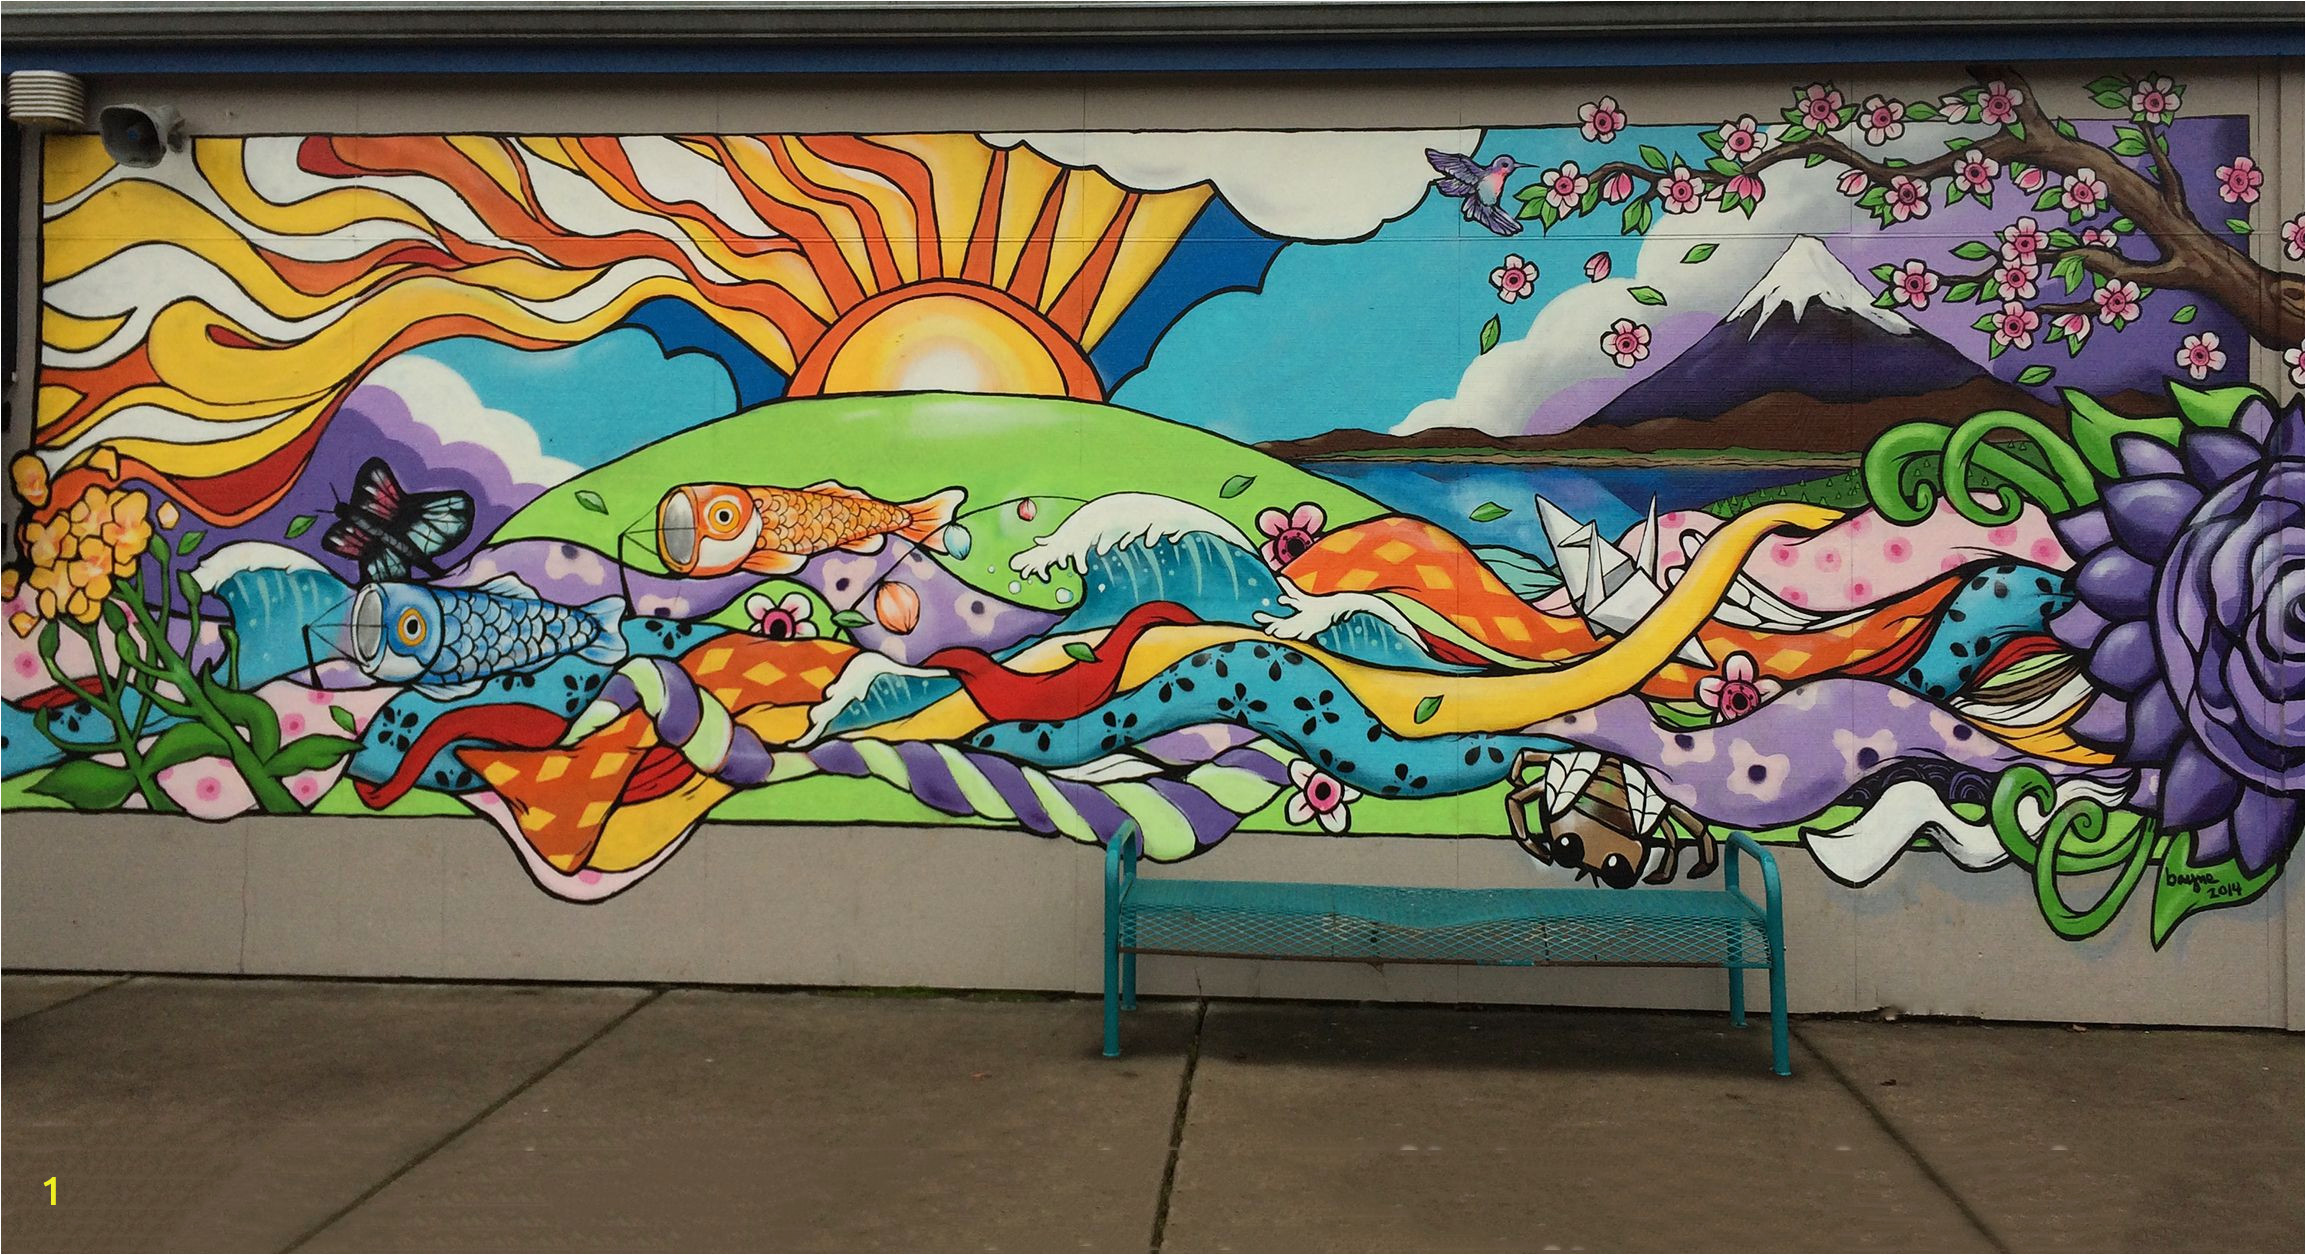 Exterior Wall Mural Painting Elementary School Mural Google Search